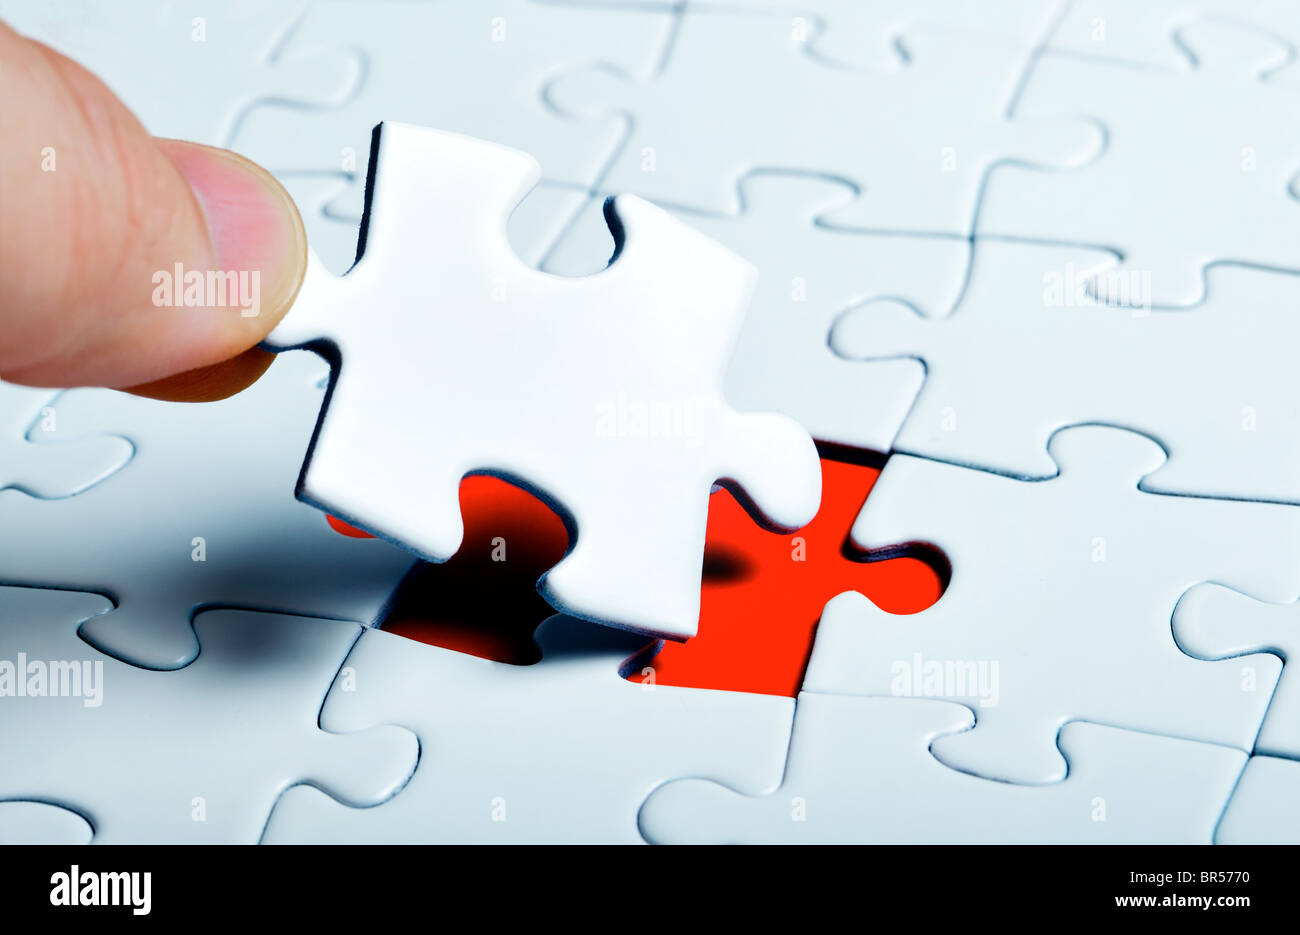 puzzle piece coming down into it's place - Stock Image